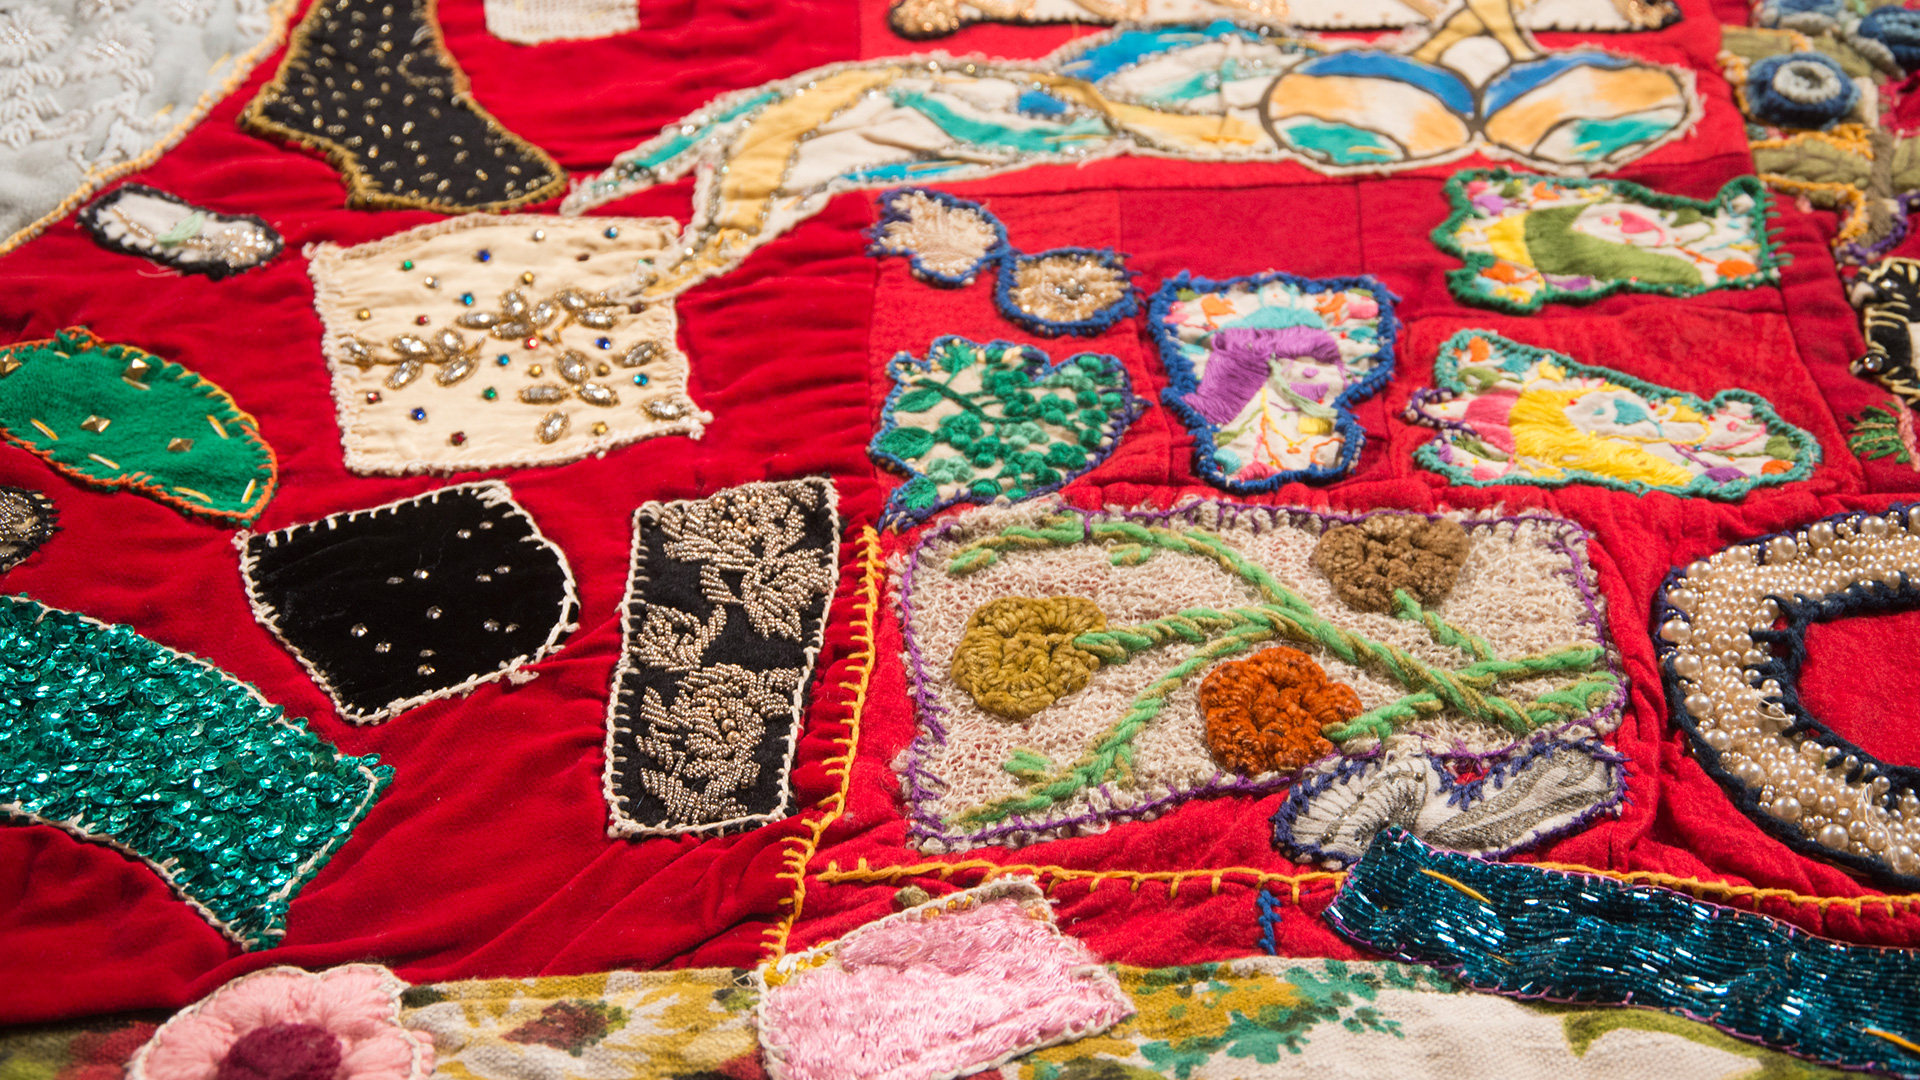 Pieced by Rosie Lee Tompkins, 'Unfinished (red velvet and embroidery)' (detail). (Photo: Terry Lorant/OMCA)